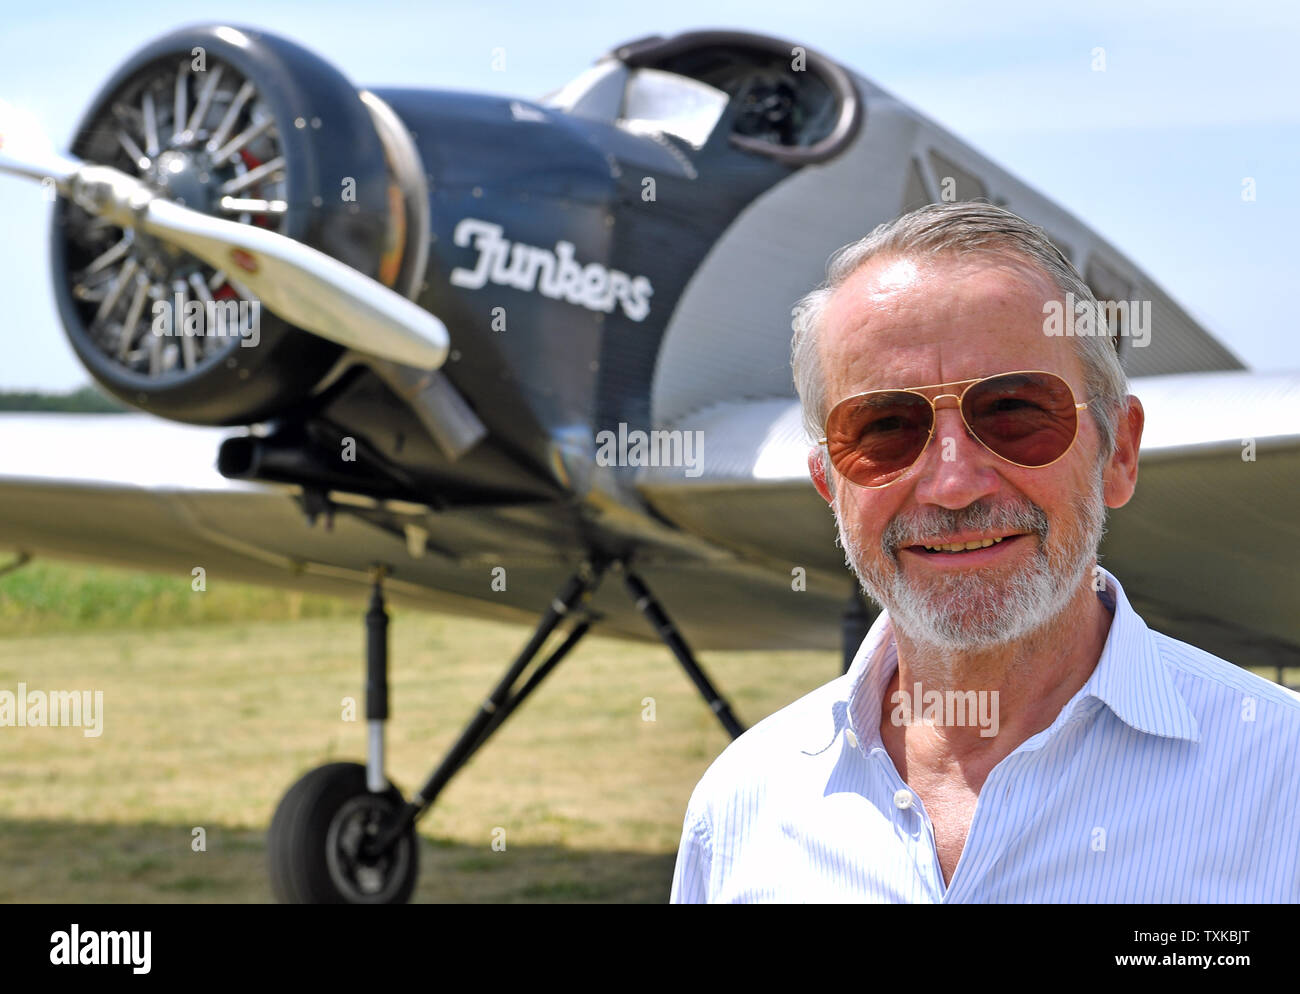 25 June 2019, Saxony-Anhalt, Dessau-Roßlau: Bernd Junkers, grandson of the aircraft pioneer Hugo Junkers, is standing at the airfield in Dessau in front of a Junkers F 13. Exactly 100 years ago, an aircraft of this type had taken off for the first time in Dessau. The aircraft, designed by aircraft pioneer Hugo Junkers, was the world's first all-metal commercial aircraft and is regarded as a pioneer in civil aviation. Since 2016, the machine has again been manufactured in small series in Switzerland. The 100th anniversary of the first flight will be celebrated in Dessau with an airport festival - Stock Image